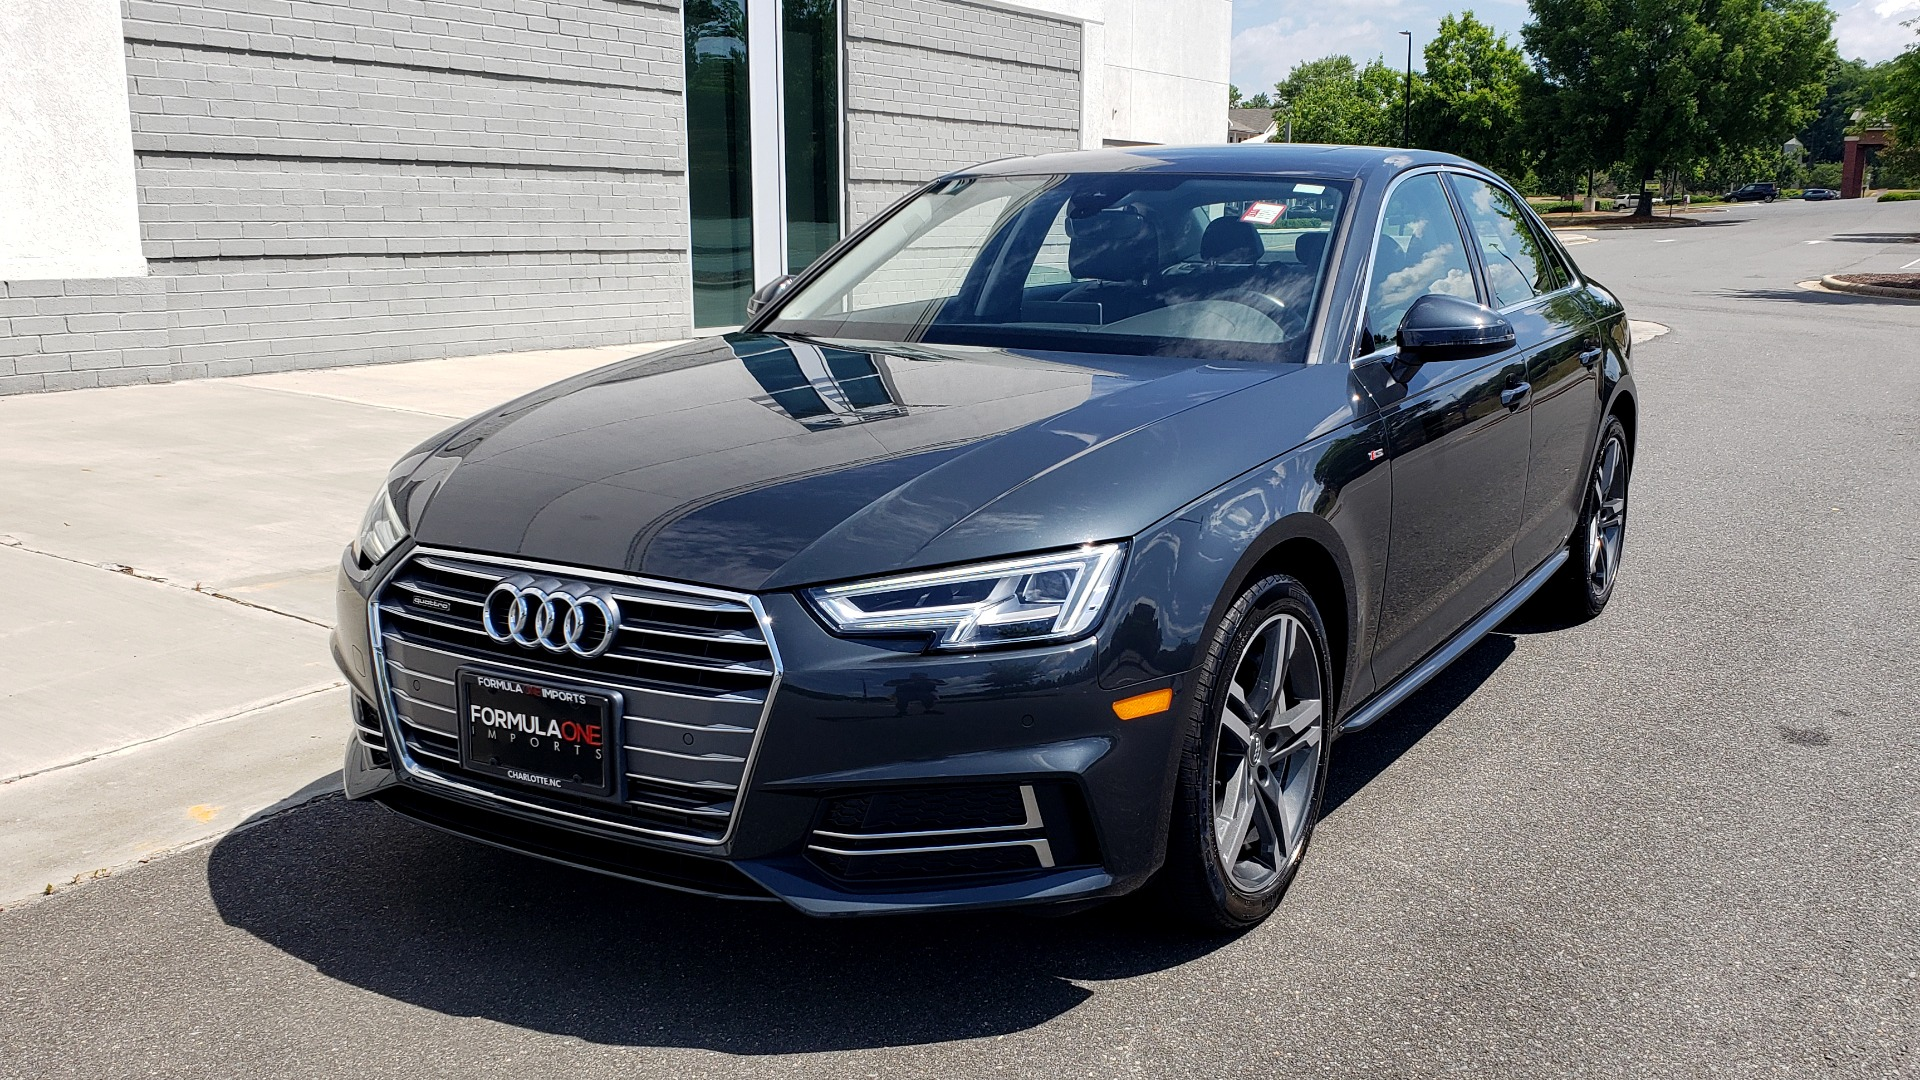 Used 2018 Audi A4 TECH PREMIUM PLUS / NAV / B&O SND / SUNROOF / CLD WTHR / REARVIEW for sale $28,595 at Formula Imports in Charlotte NC 28227 3